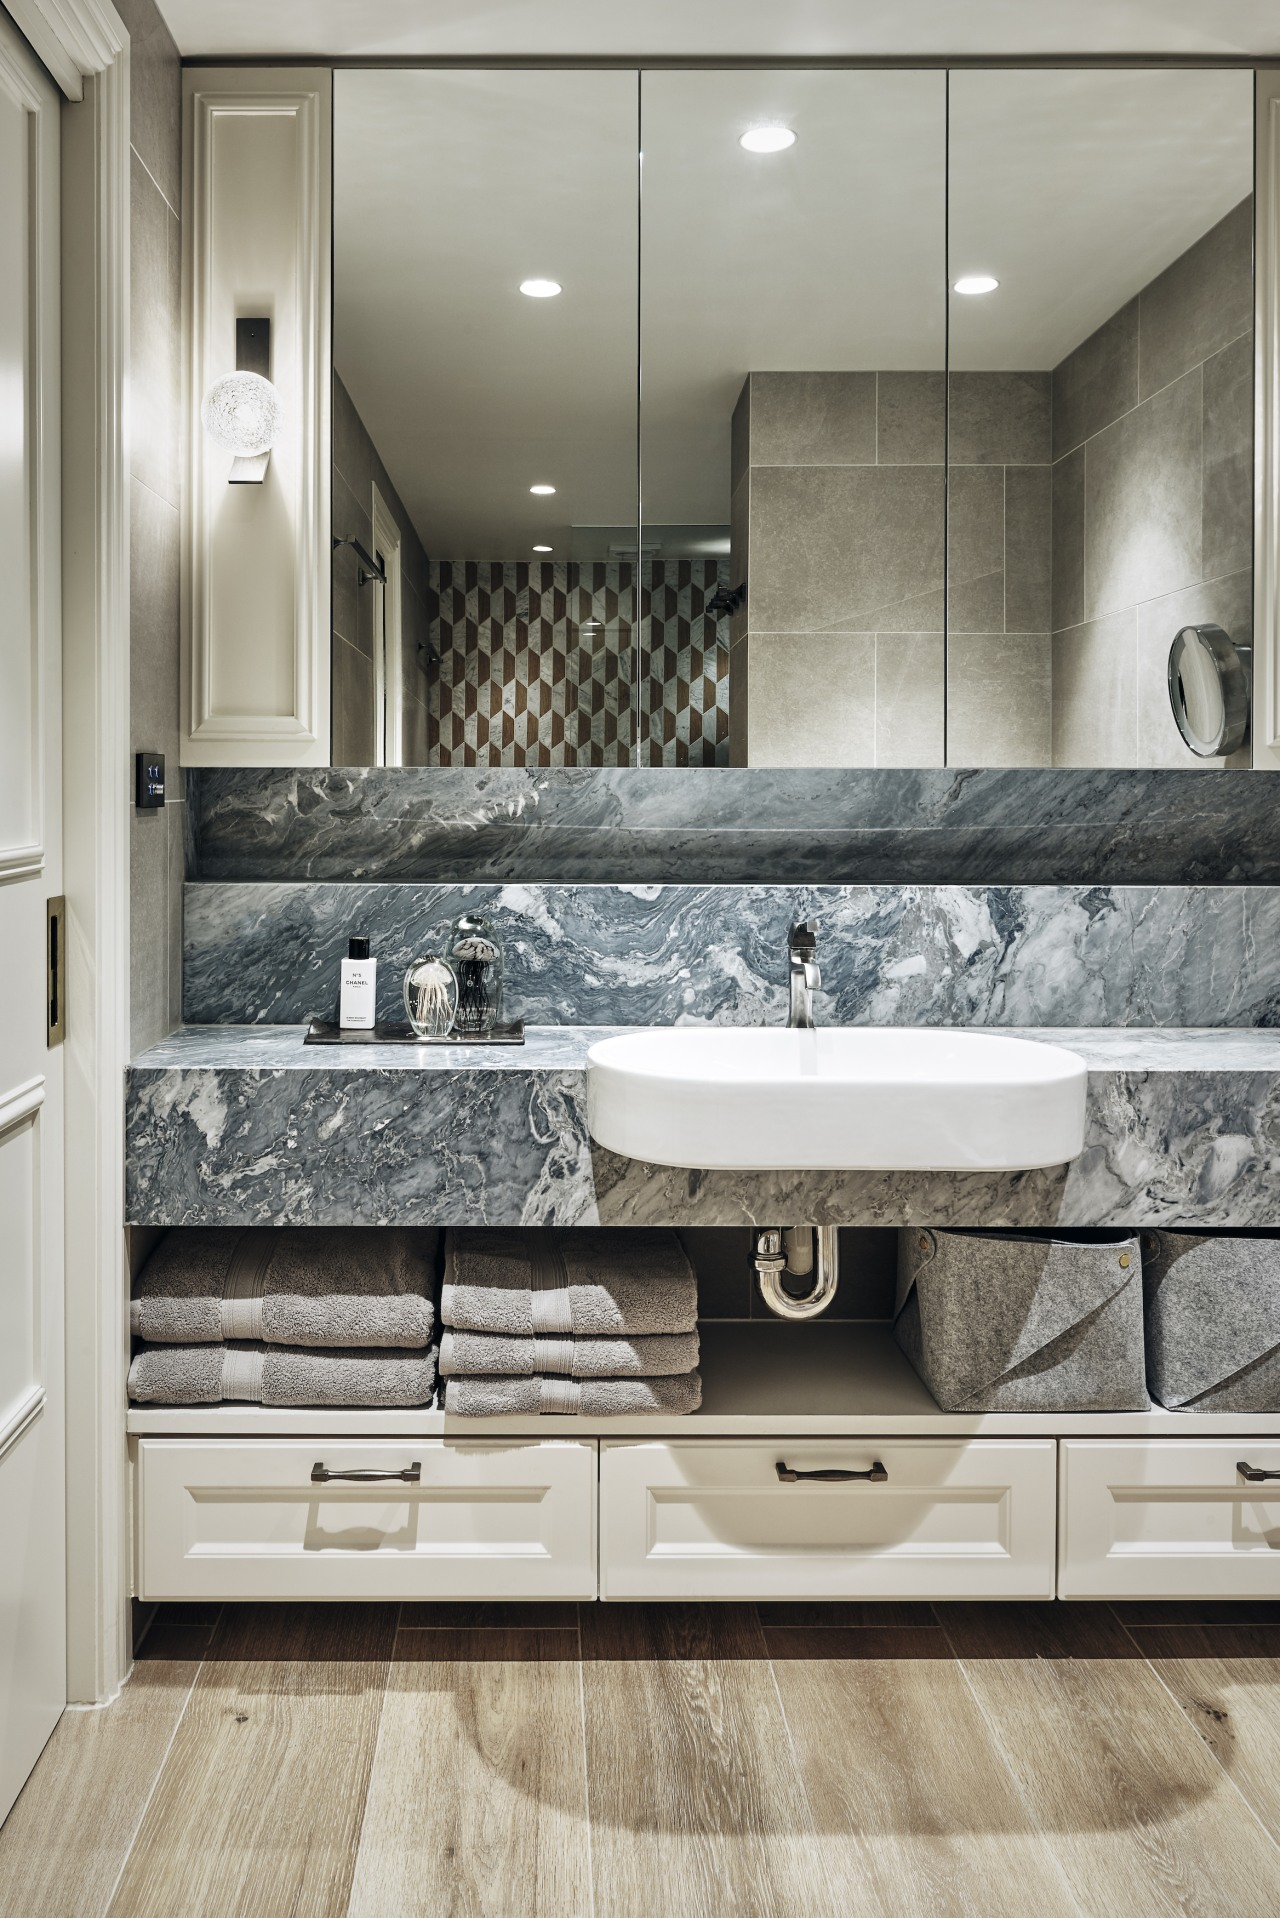 Natural materials, texture, and pattern give the bathroom